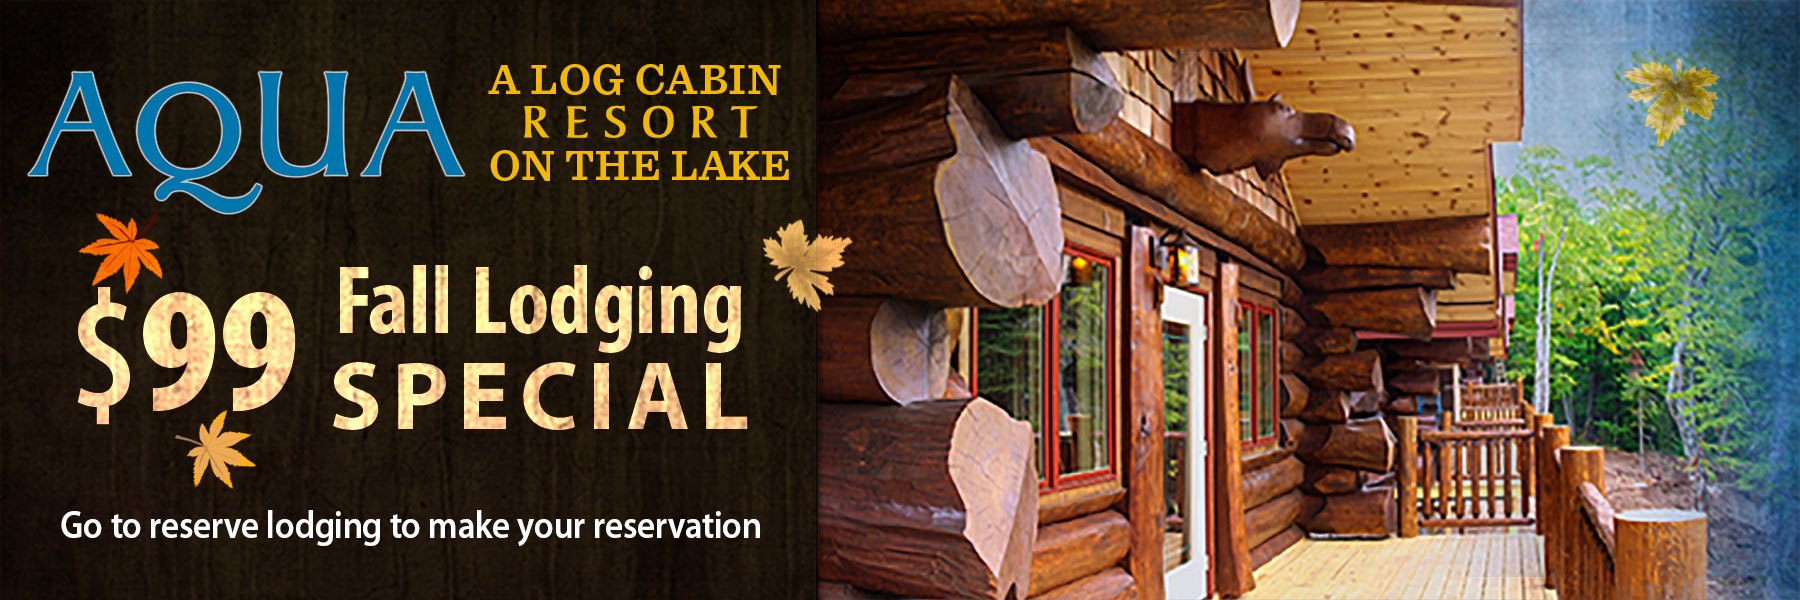 fall lodging specials